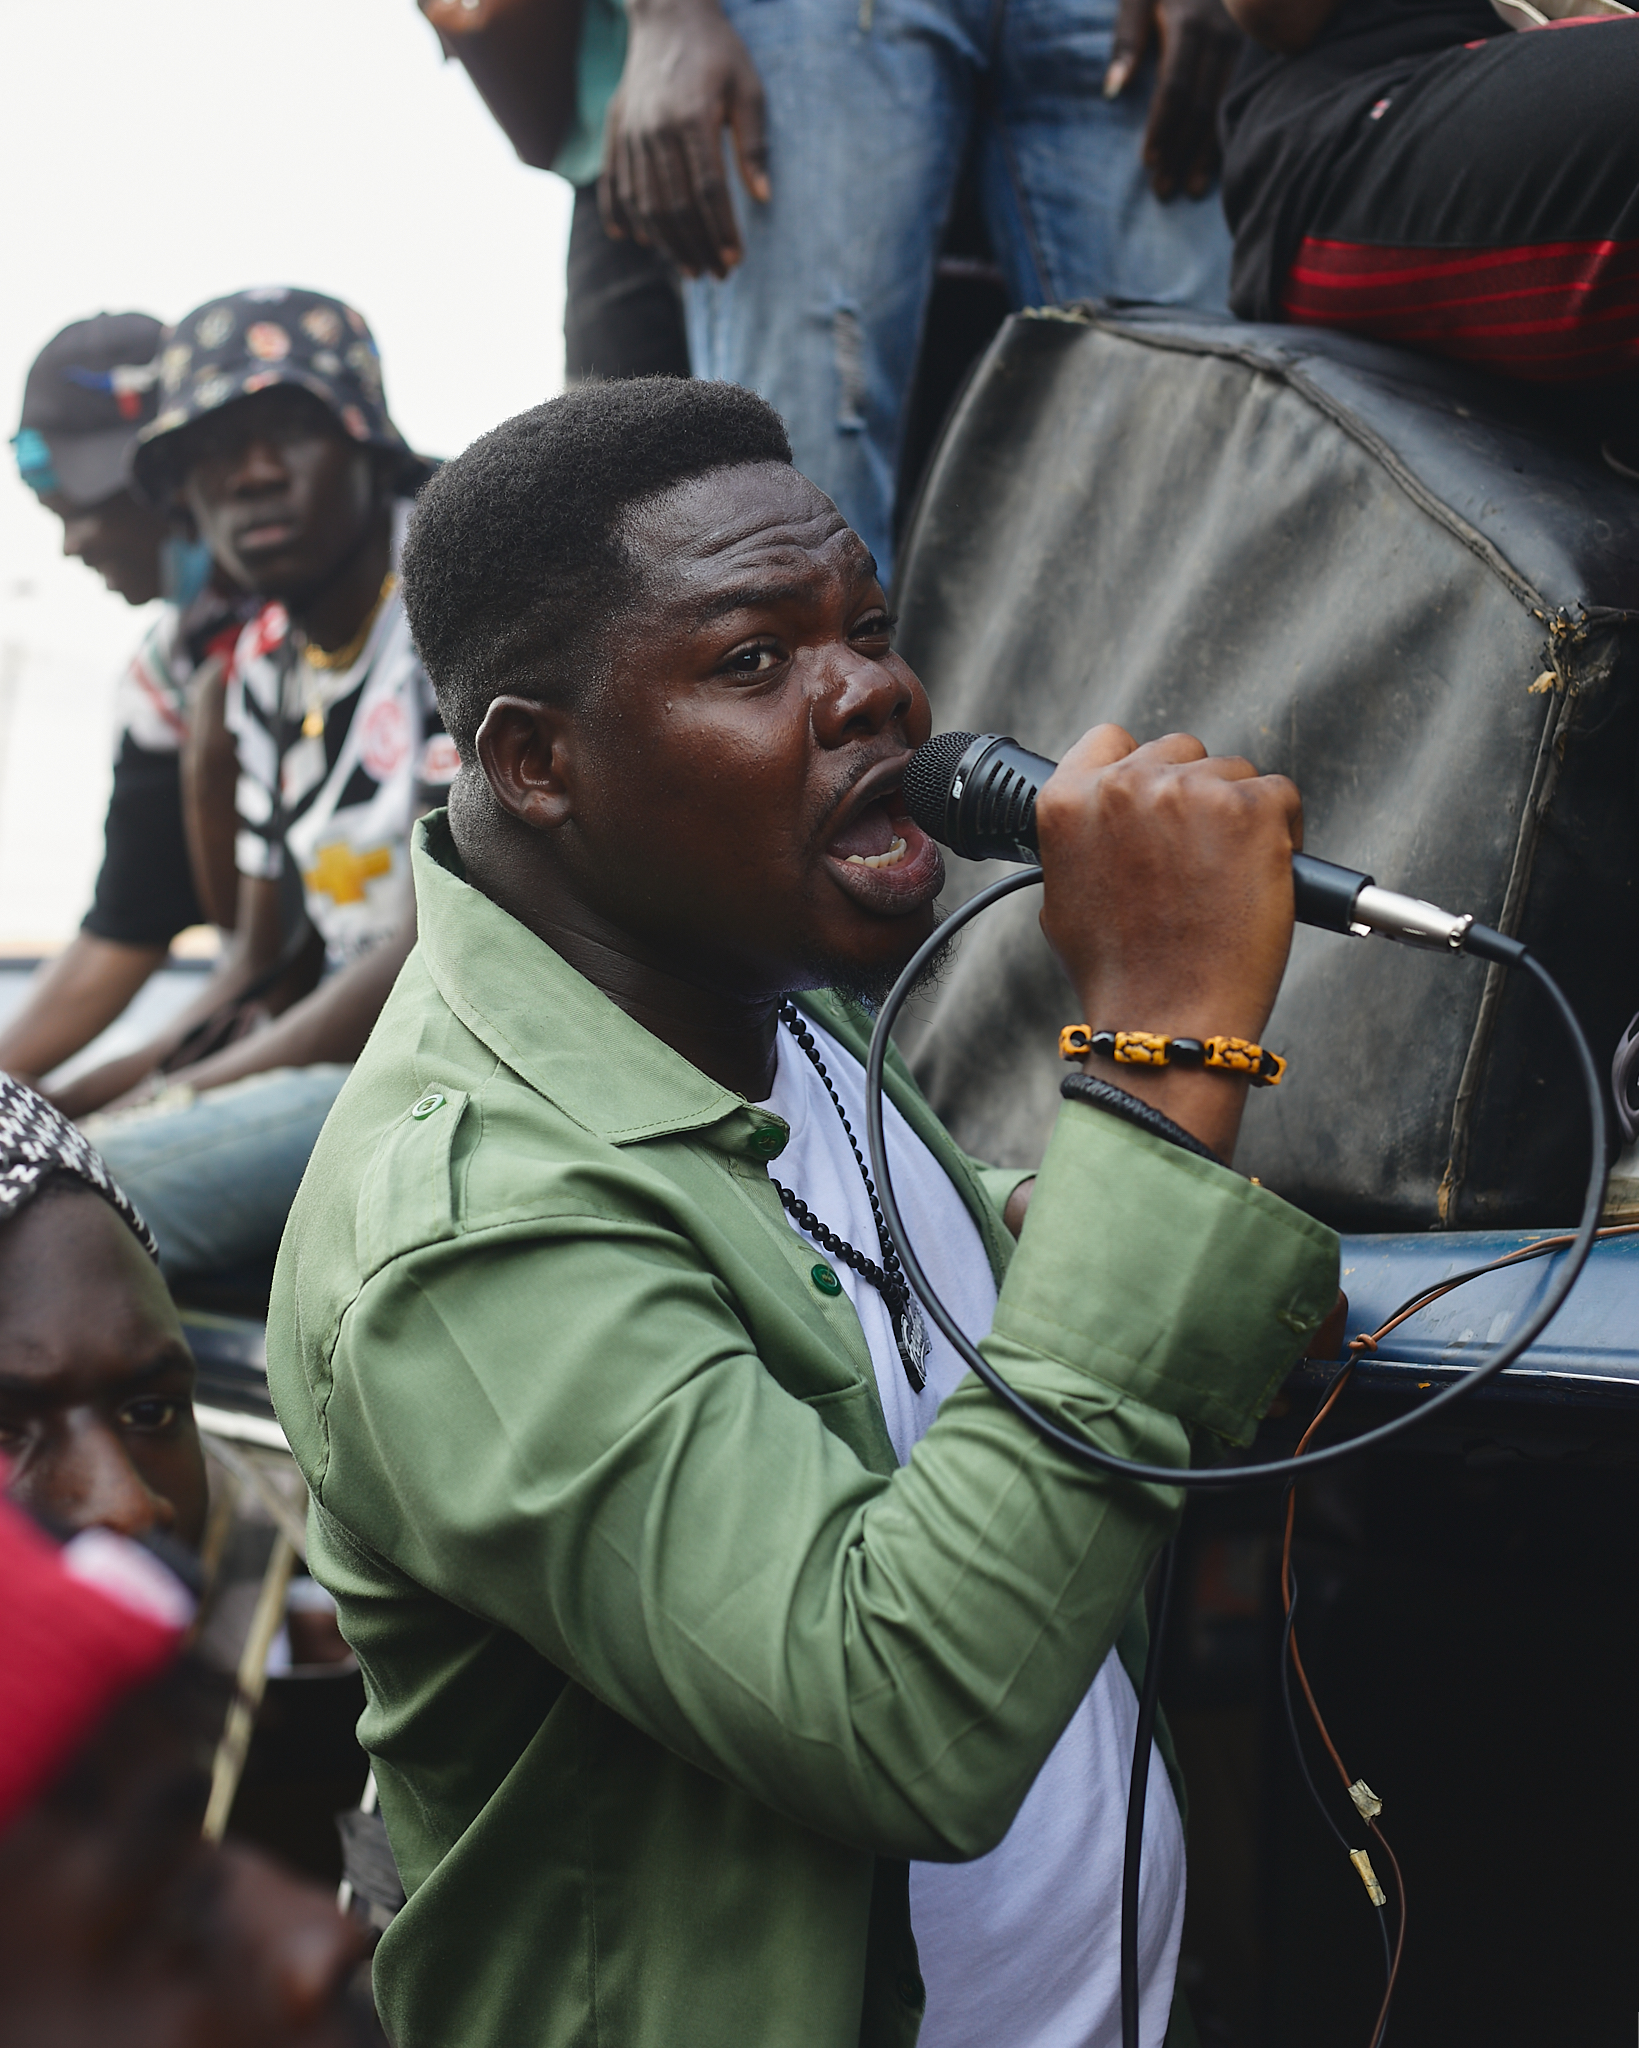 Protester with mic at anti-SARS protest in Lagos